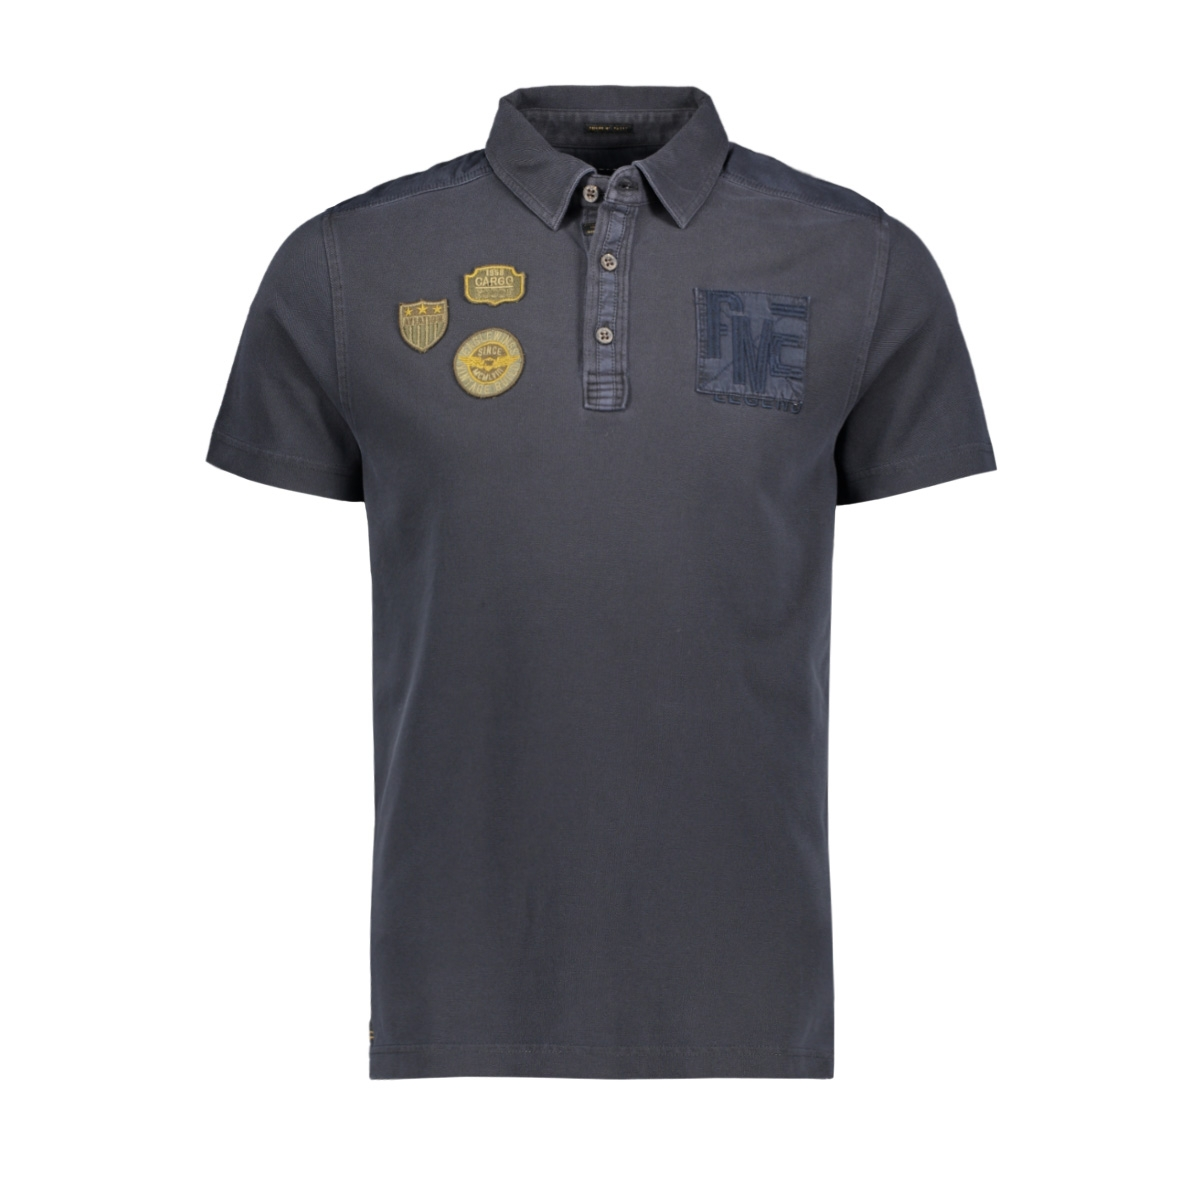 rugged pique polo ppss192862 pme legend polo 5281